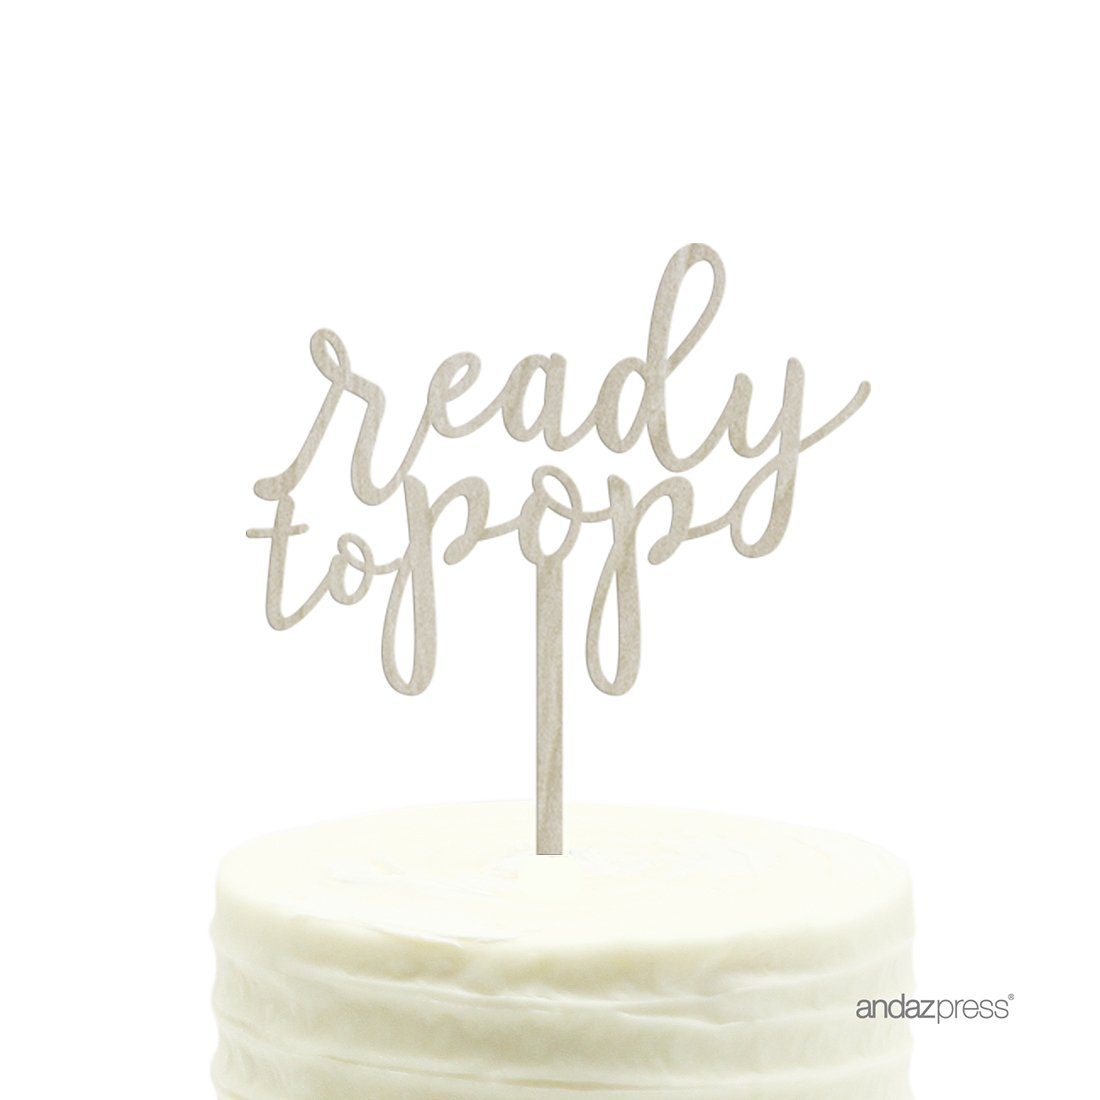 Andaz Press Baby Shower Wood Cake Toppers, Ready to Pop, 1-Pack